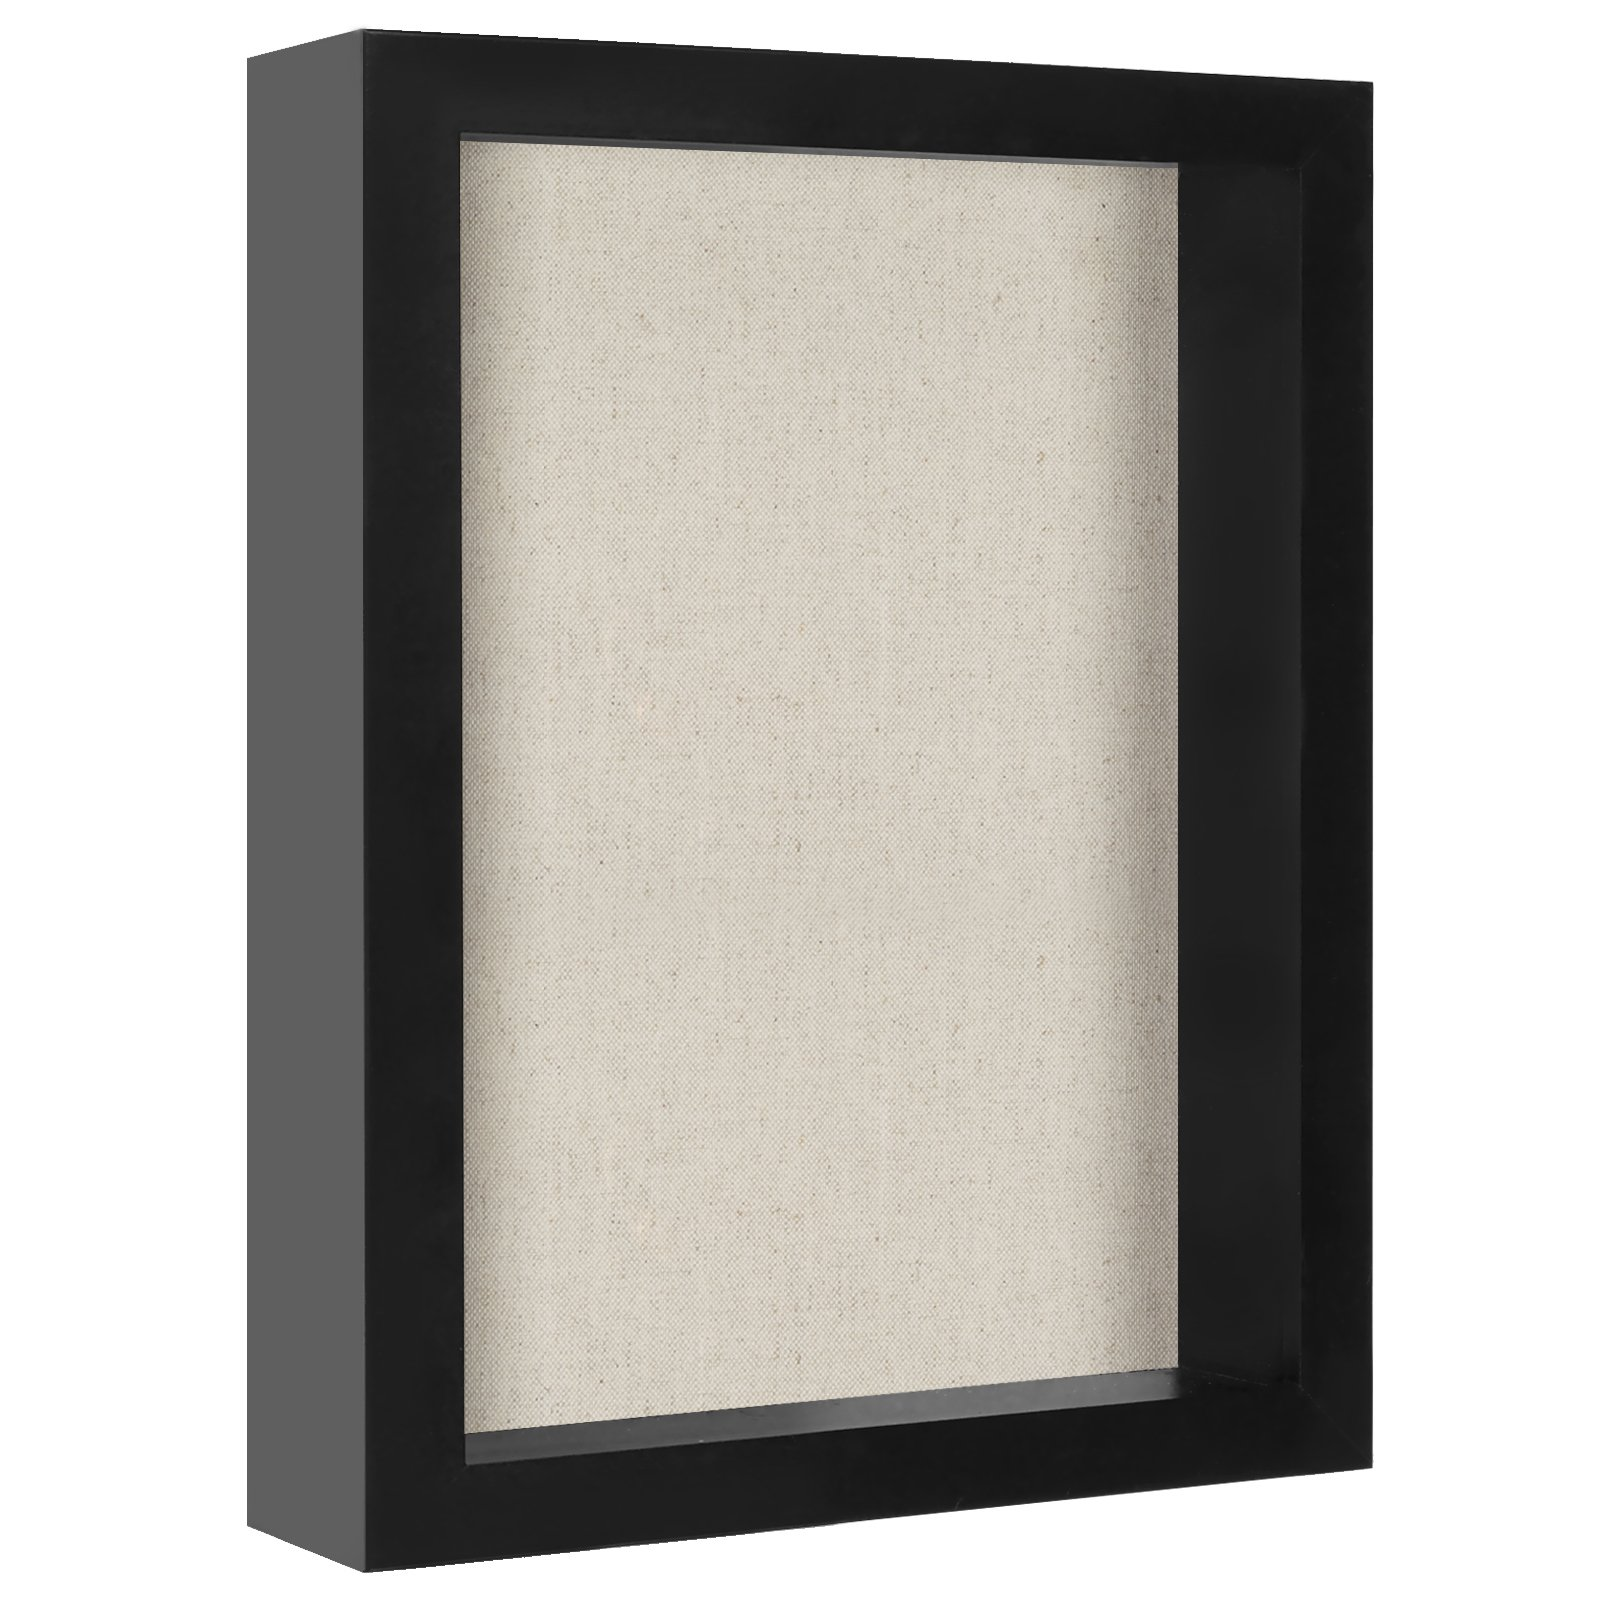 Americanflat 8x10 Shadow Box Frame Soft Linen Back - Perfect to Display Memorabilia, Pins, Awards, Medals, Tickets Photos